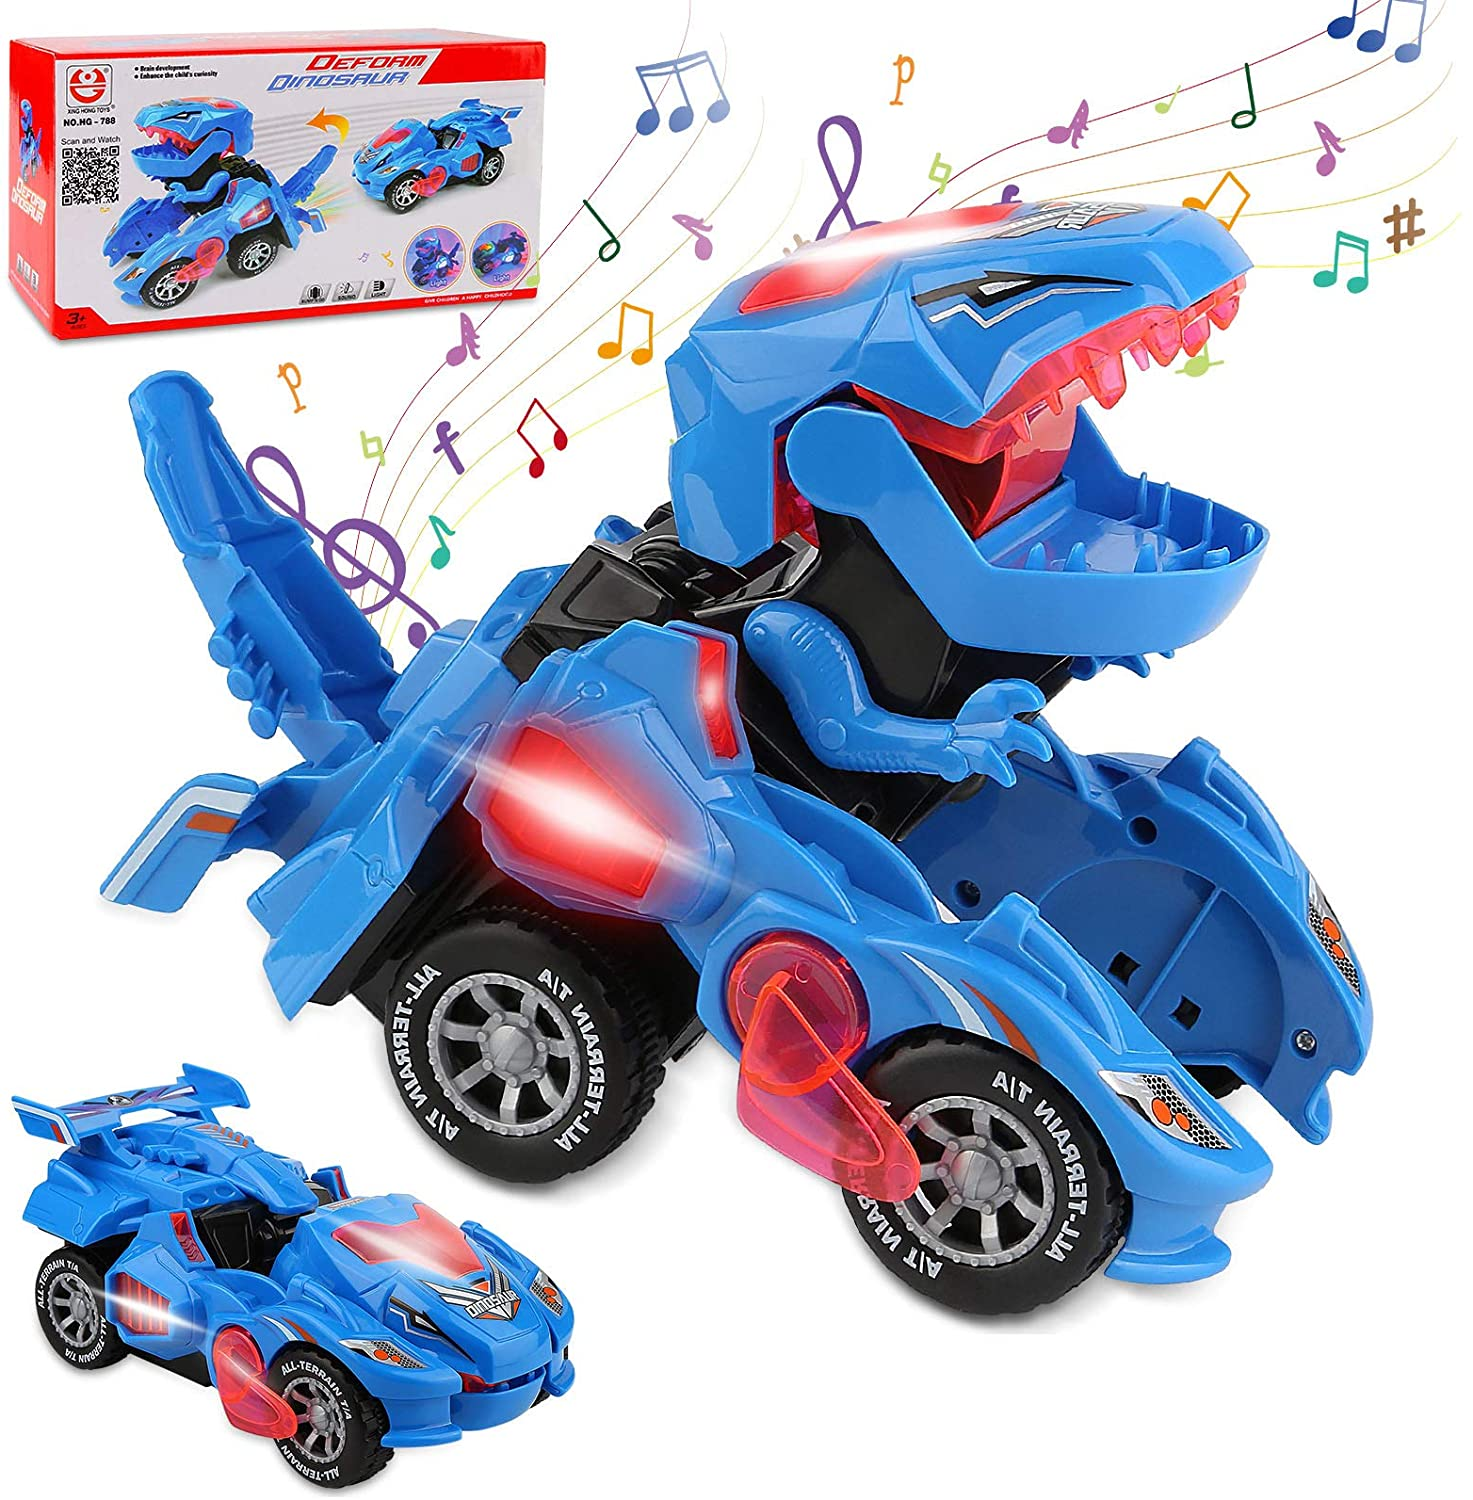 Rusee Transforming Dinosaur Toys, Rusee Transforming Dinosaur Car, Automatic Transform Dino Cars with Music and LED Light, Transform Car Toy for Kids Boys Girls Birthday Gifts (Blue)